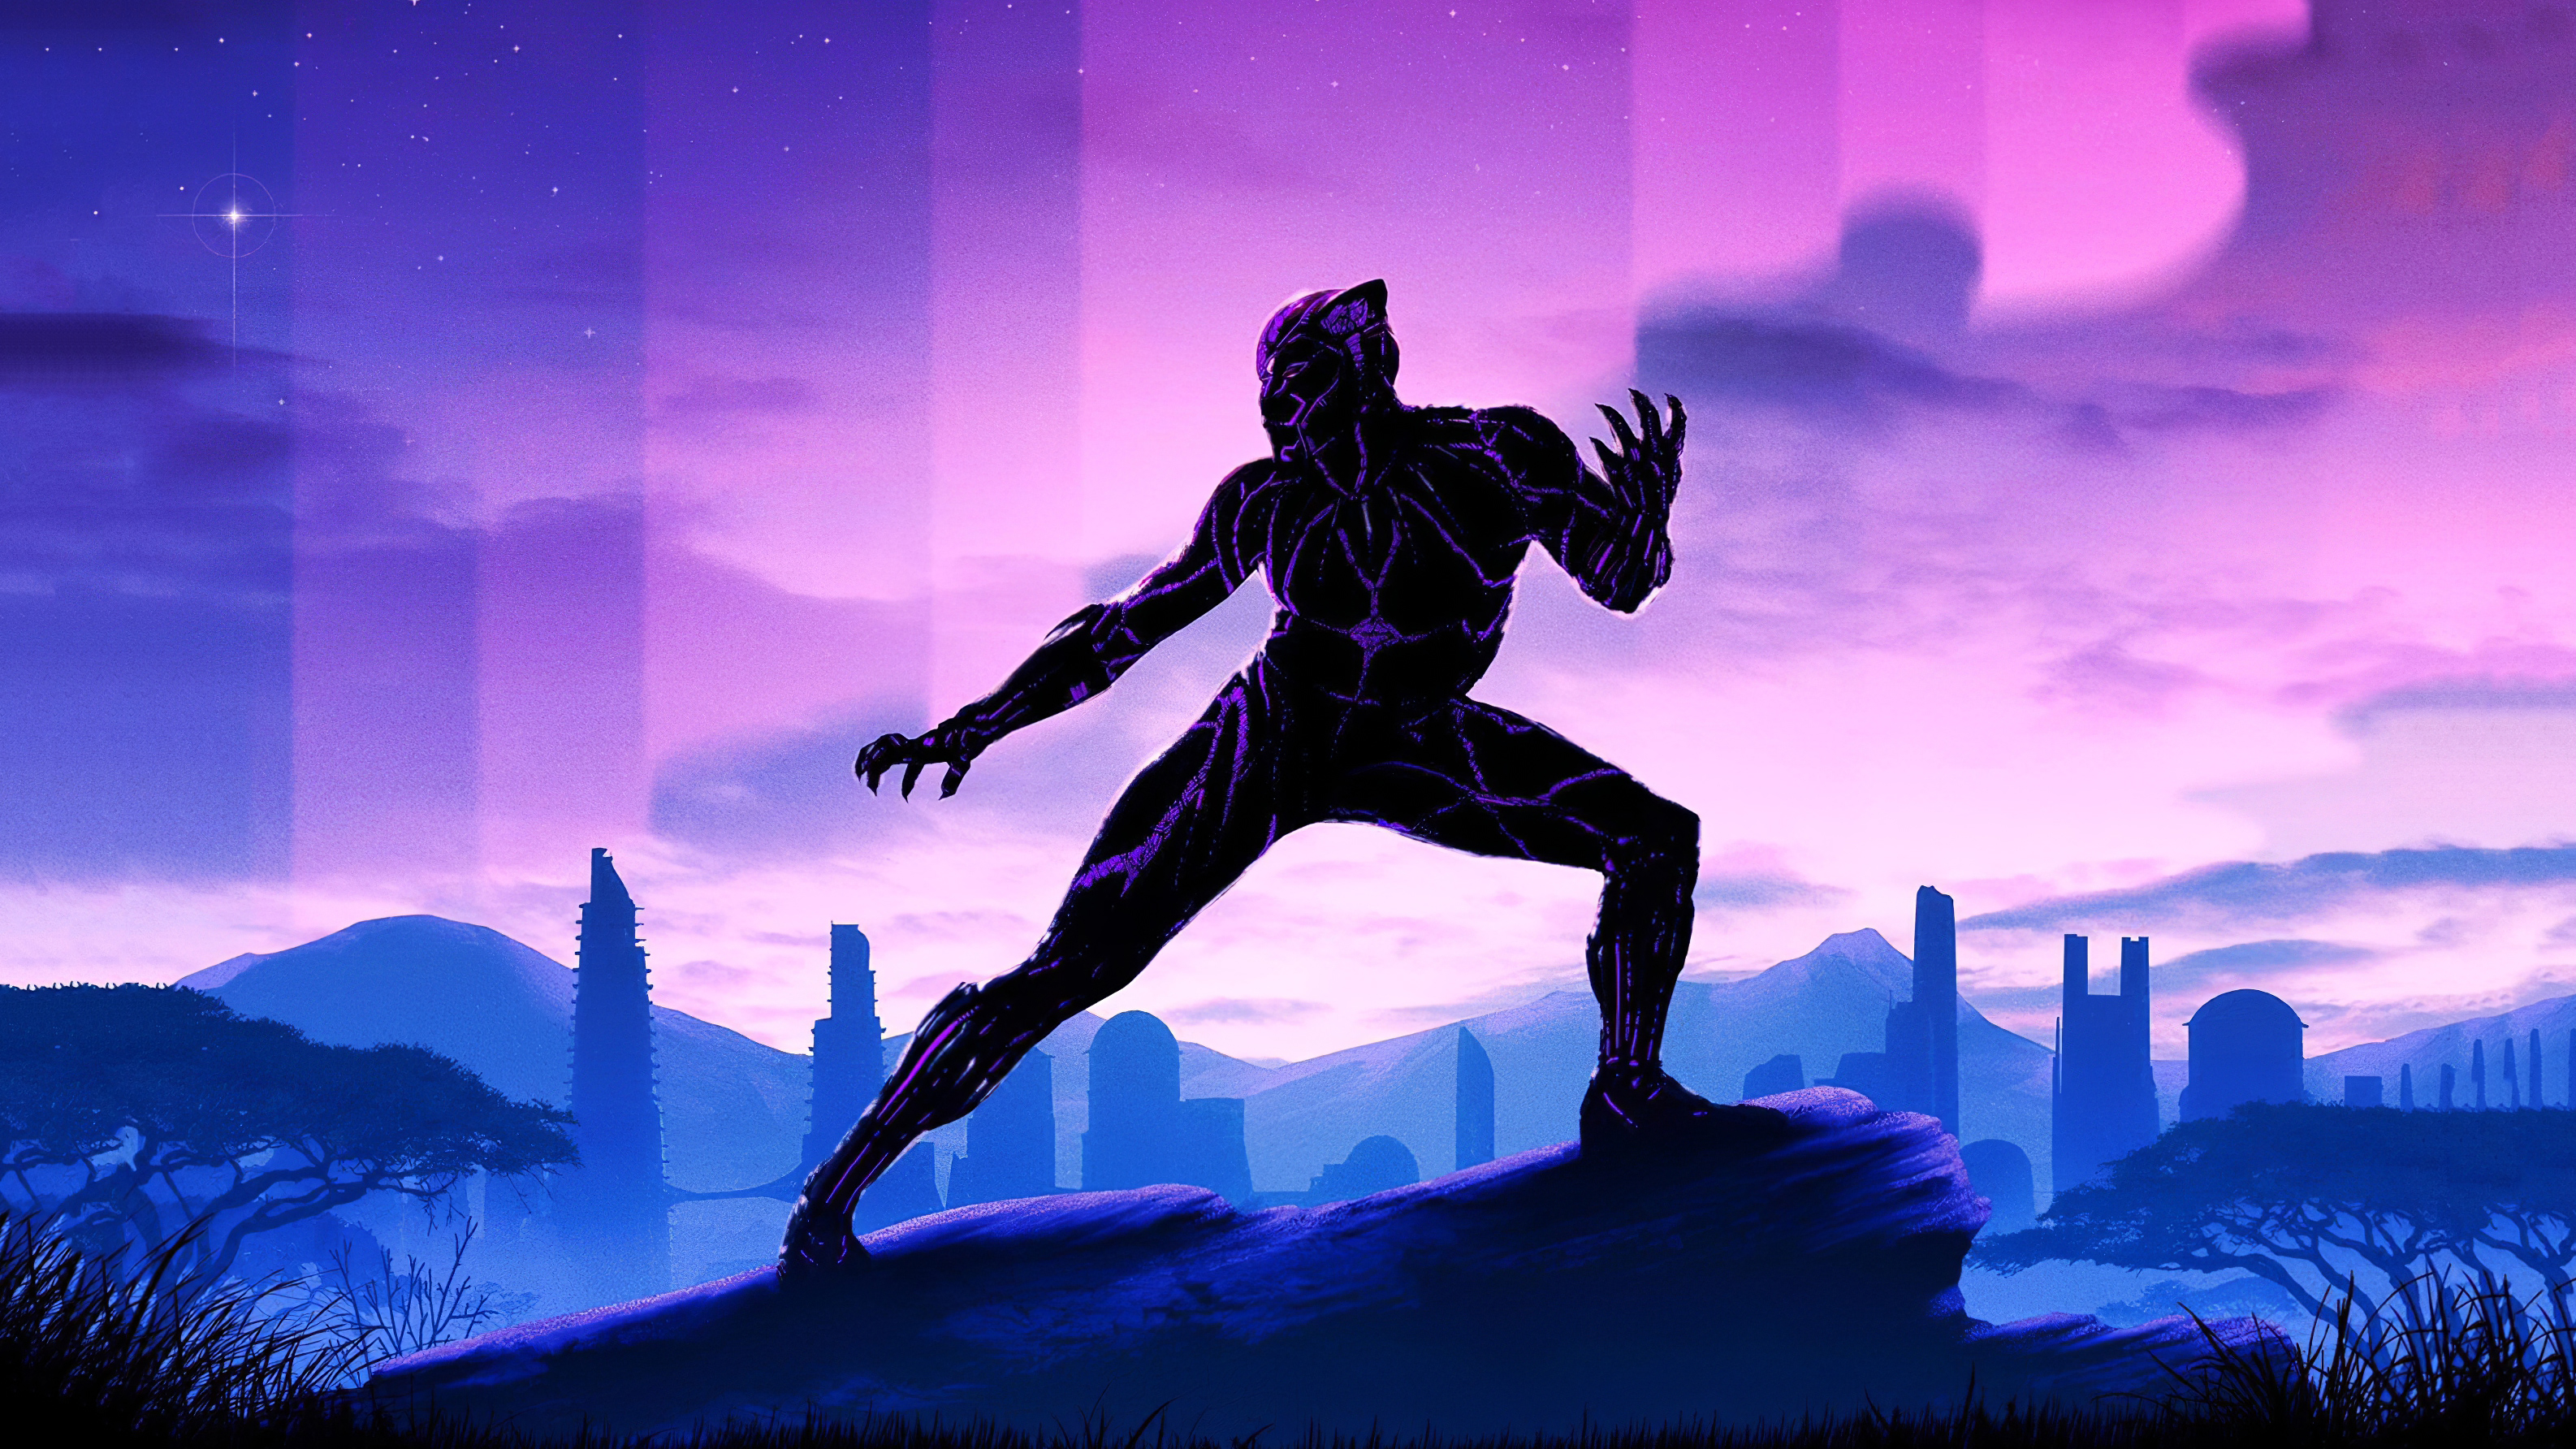 320x568 Black Panther 2020 320x568 Resolution Wallpaper Hd Superheroes 4k Wallpapers Images Photos And Background